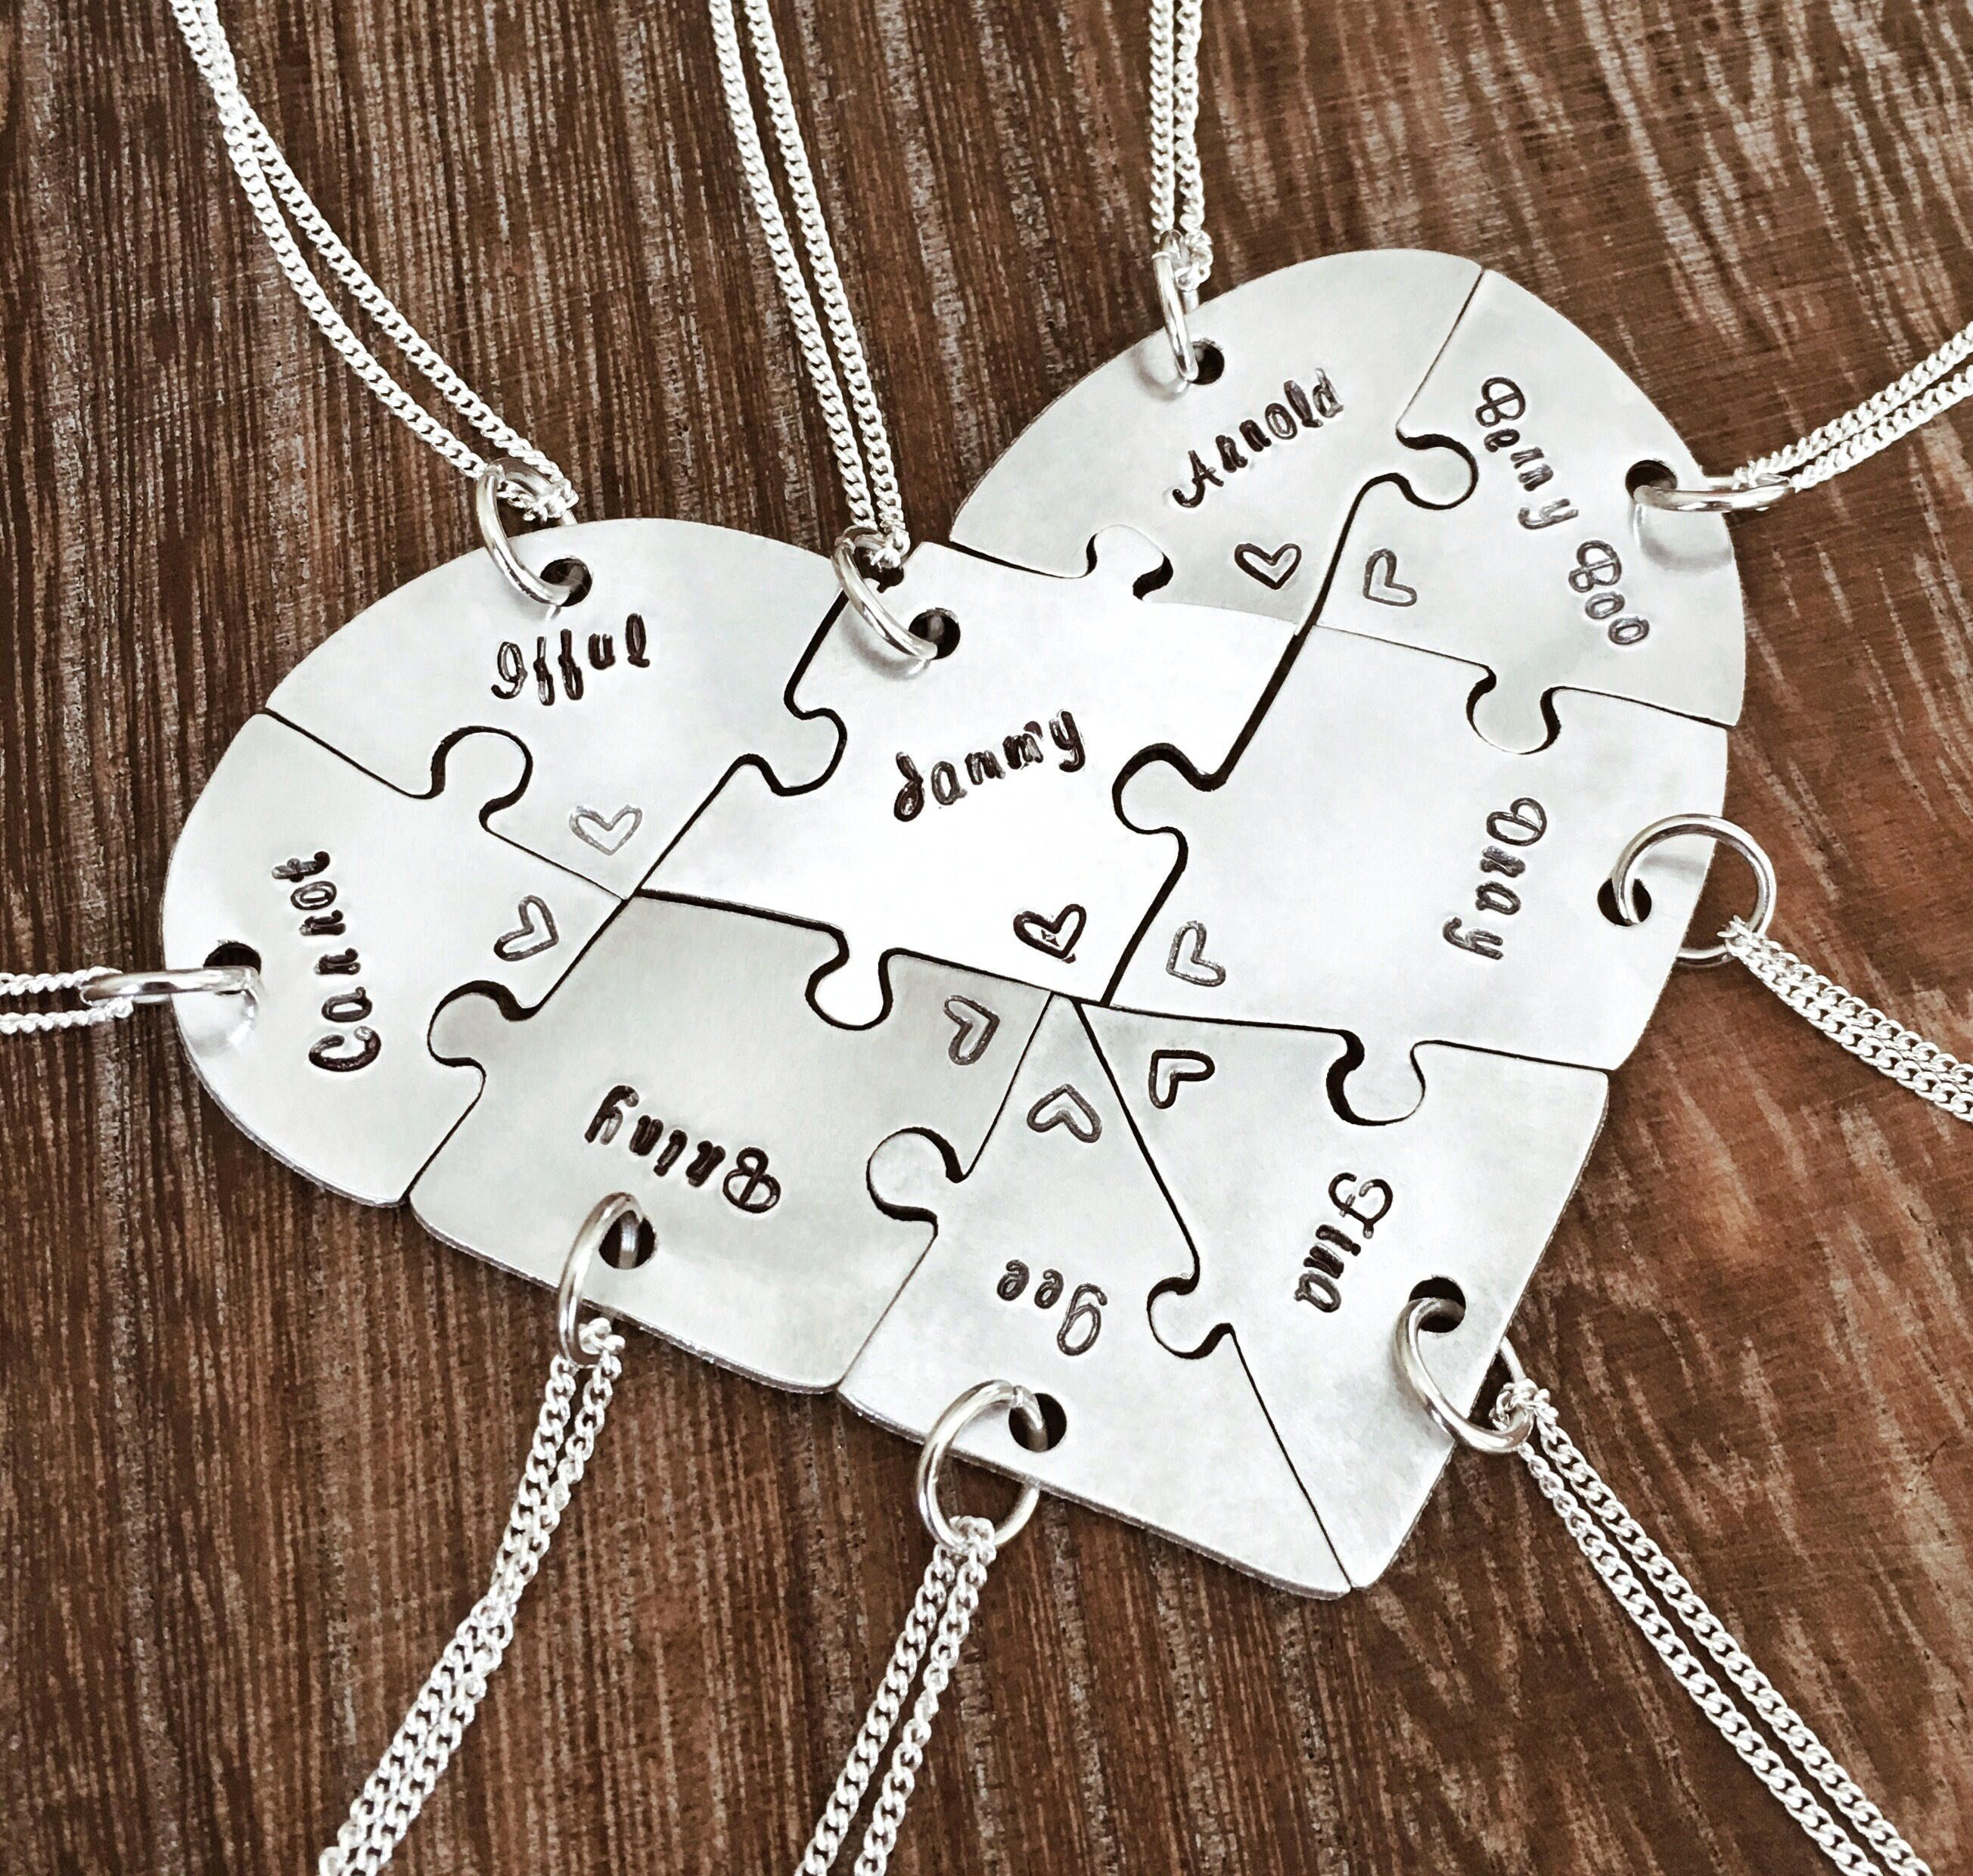 hand engraved argentium silver heart puzzle necklaces, friendship